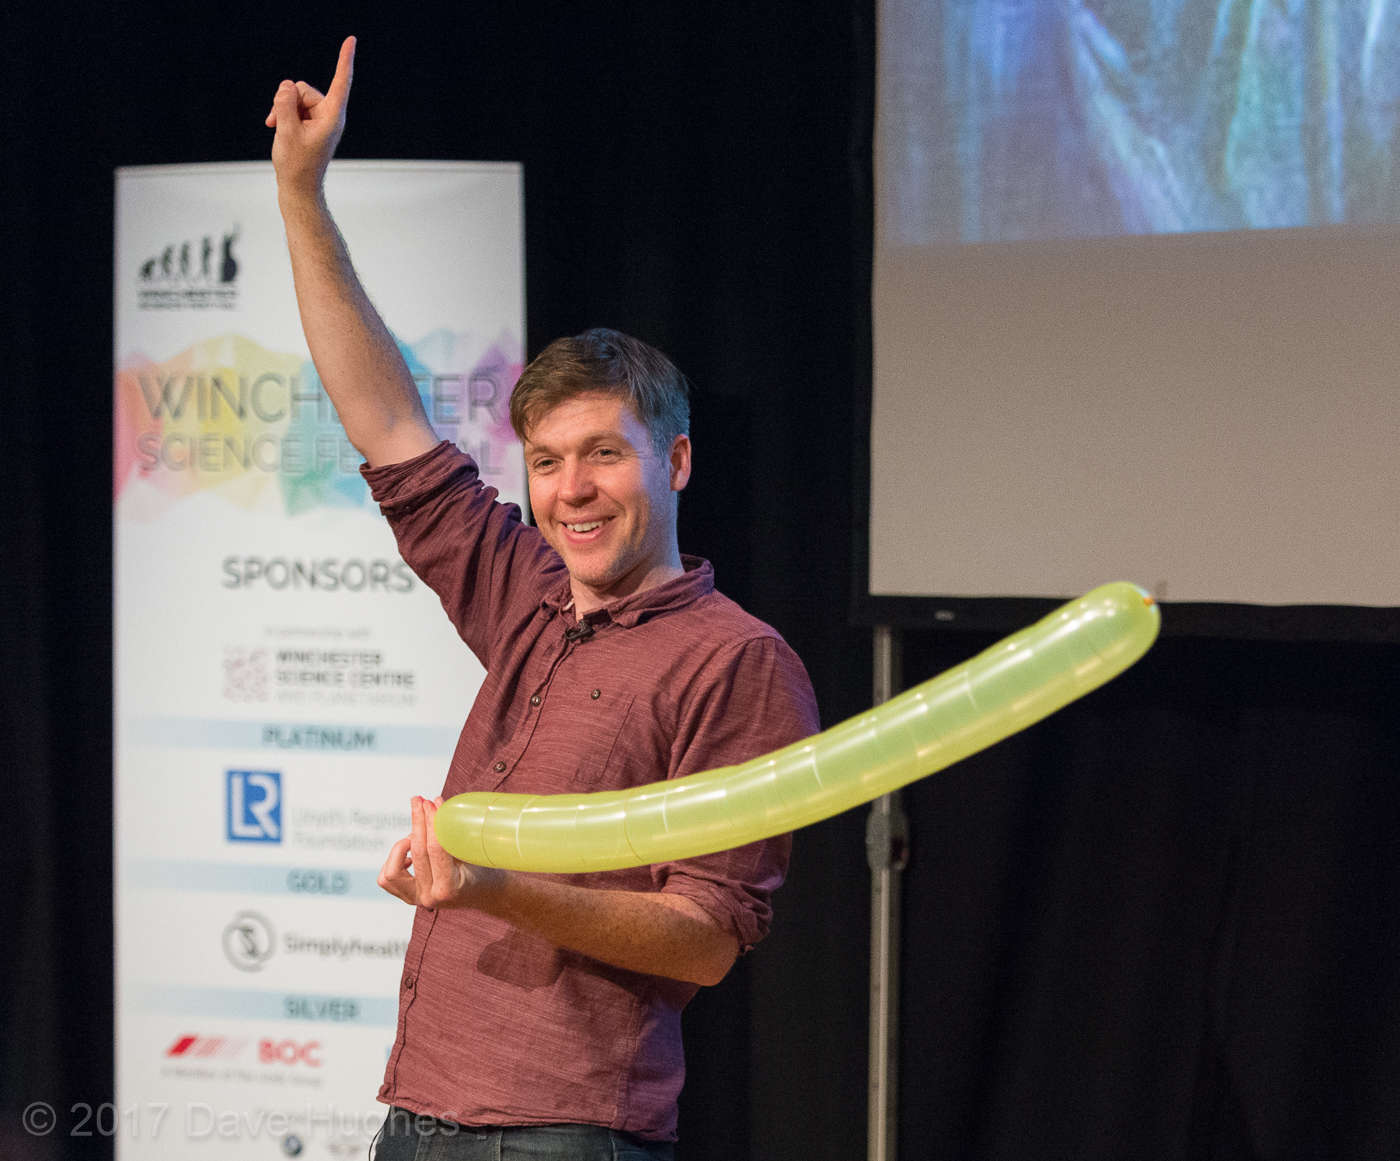 Simon performing Look Up at Winchester Science Festival